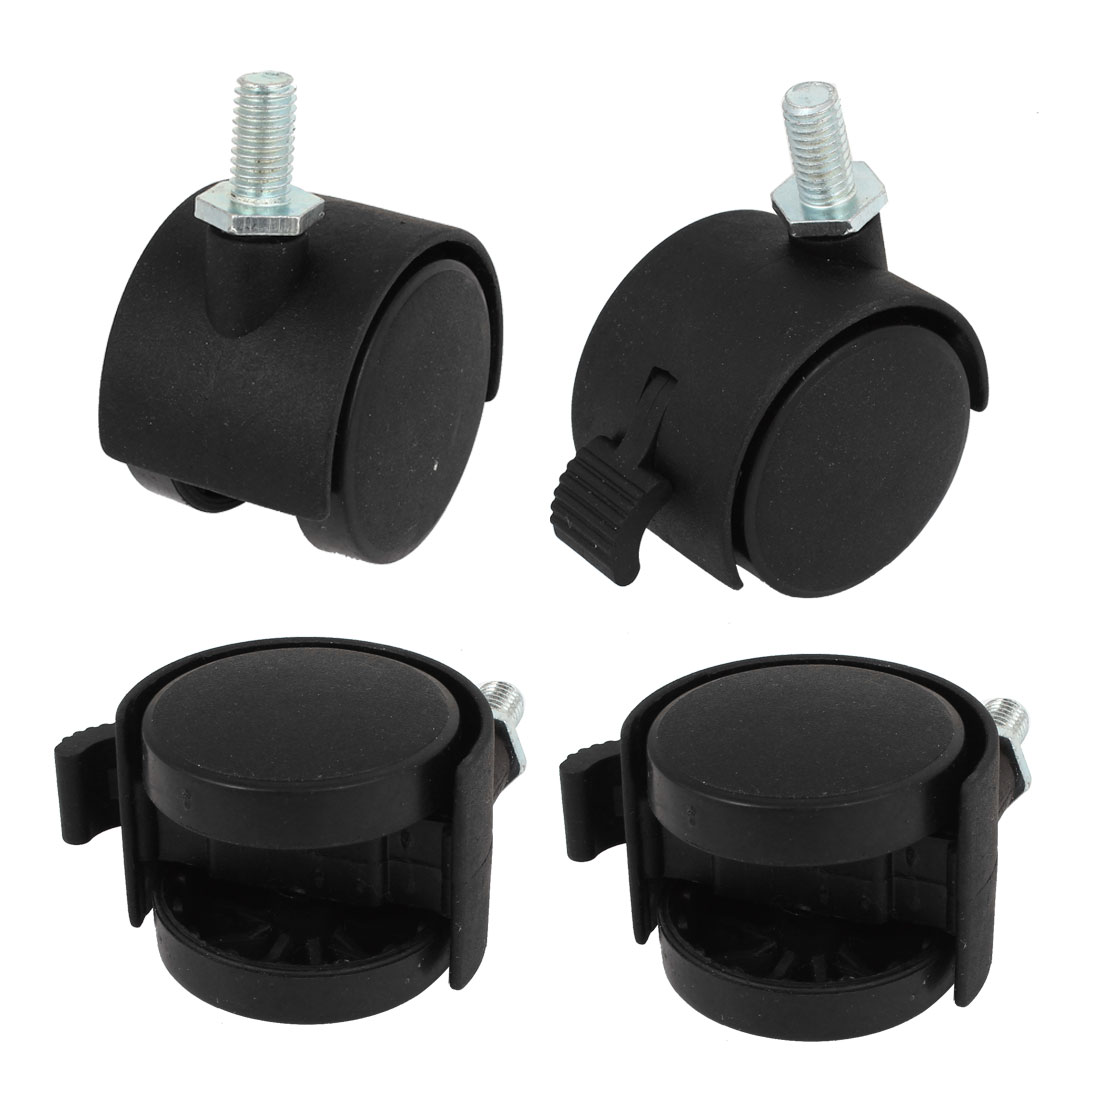 "Black 8mm Screwstem 1.5"" Dia Wheel 360 Degree Rotation Swivel Lock Caster 4 Pcs"